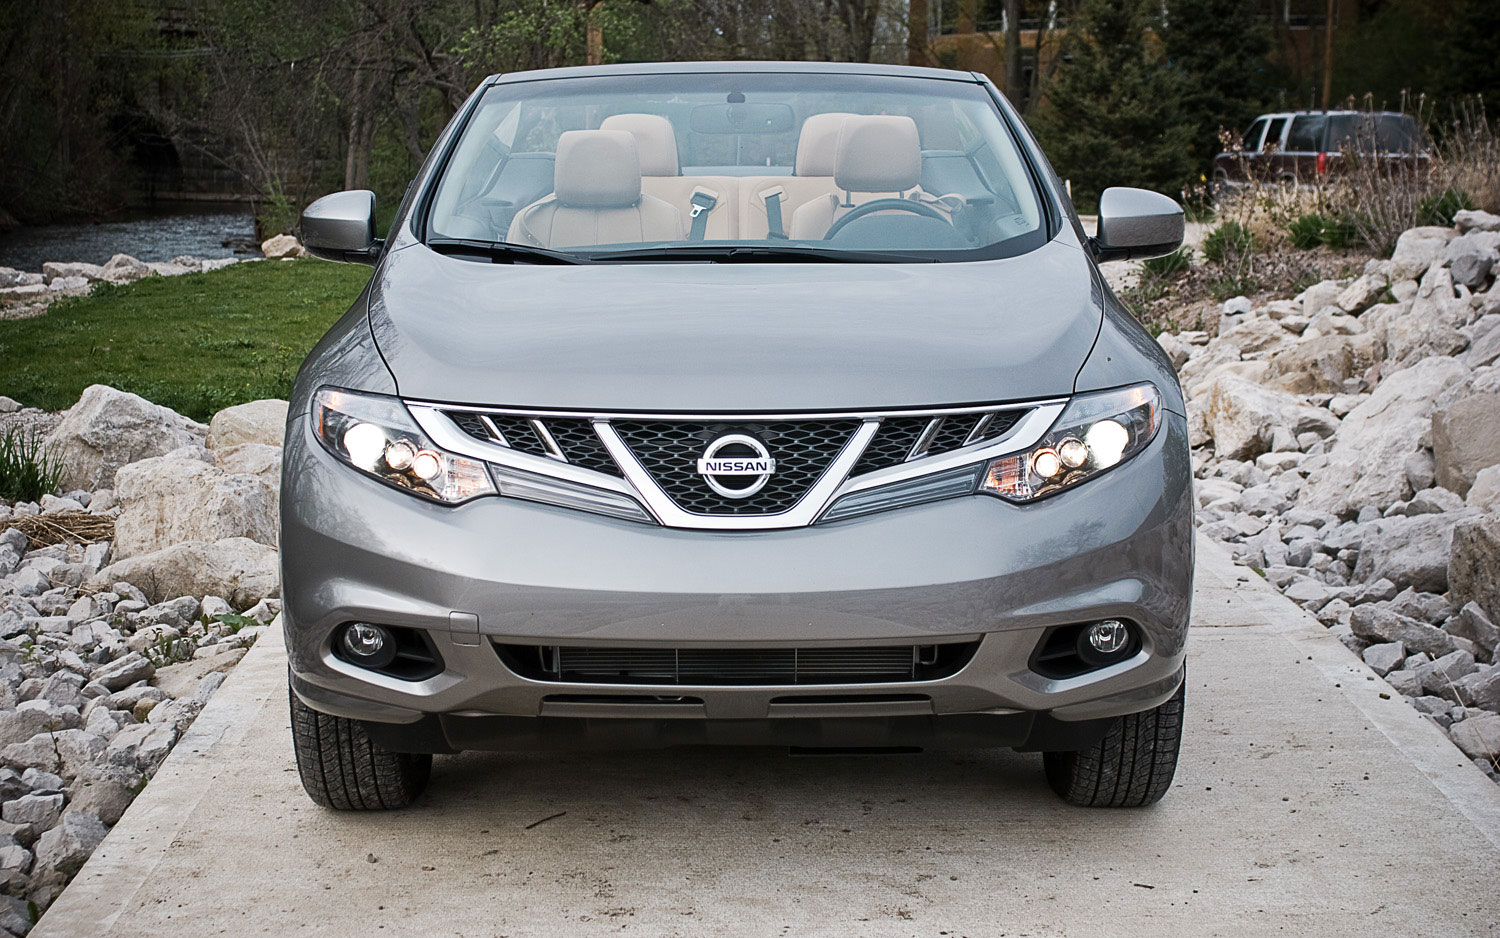 2011 nissan murano crosscabriolet awd editors notebook 2011 nissan murano crosscabriolet awd vanachro Image collections